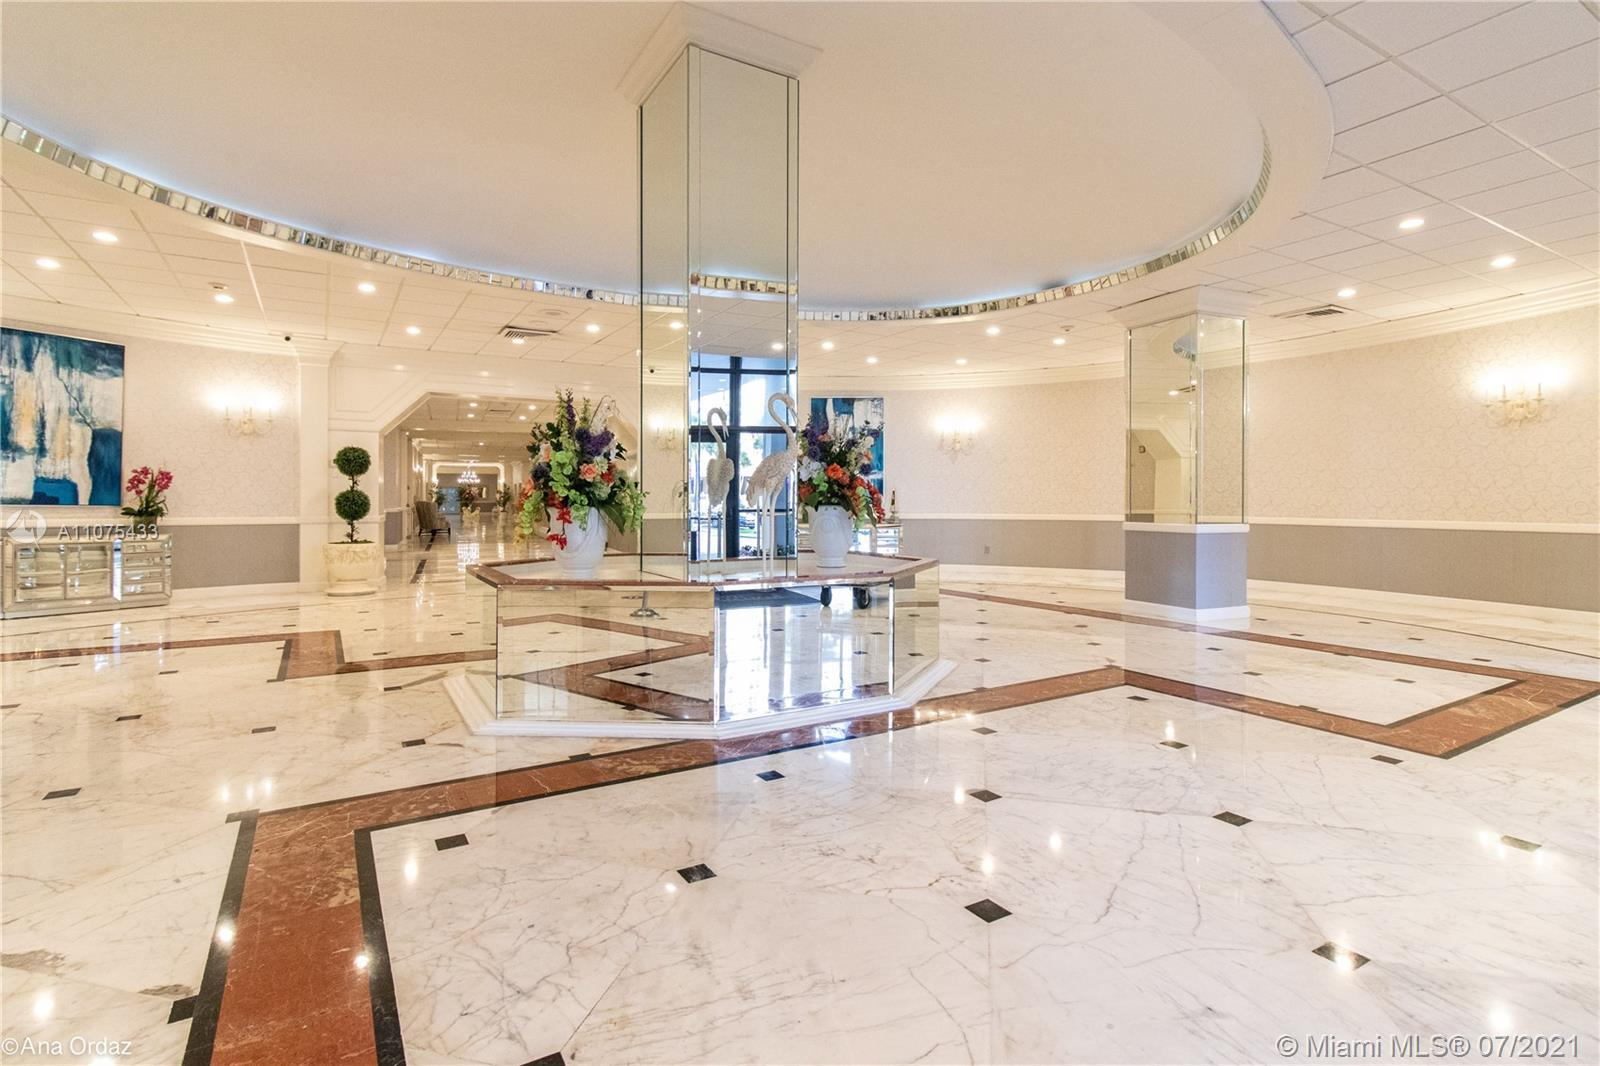 MAGNIFICENT INTRACOASTAL VIEWS AT THE HALLMARK ACROSS ST FROM THE OCEAN- PENTHOUSE 2/2 + DEN 3 FULL